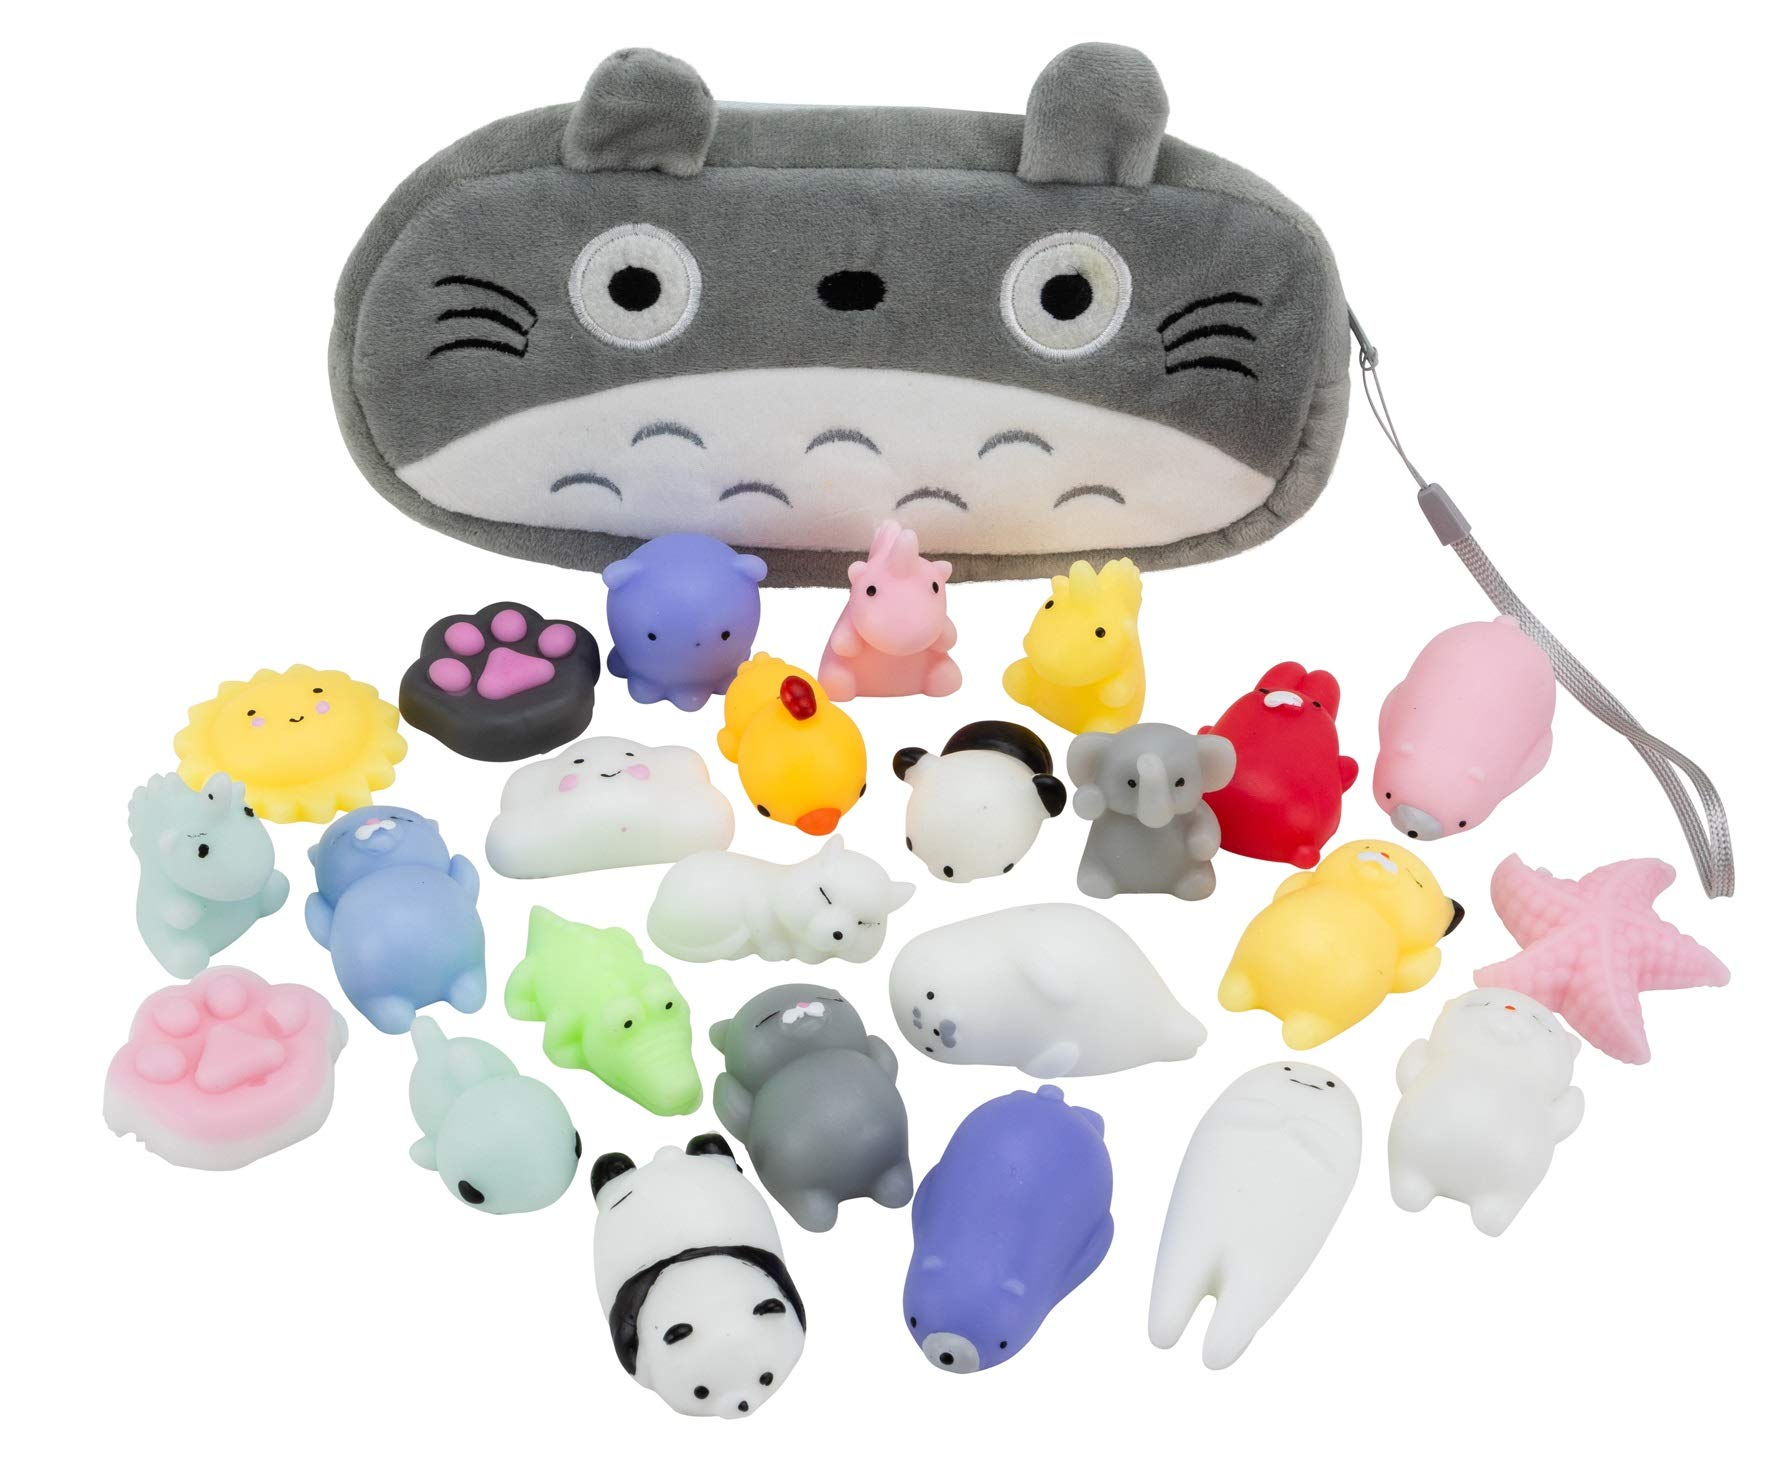 The Original Mochi Squishy Toys - 25 Kawaii Squishy Animals with a Totoro Bag - Cute Squishies Perfect for Birthday Goodie Bags, Party Favors, Stress Relief Toys, and Easter Egg Stuffers by PlayPlanet